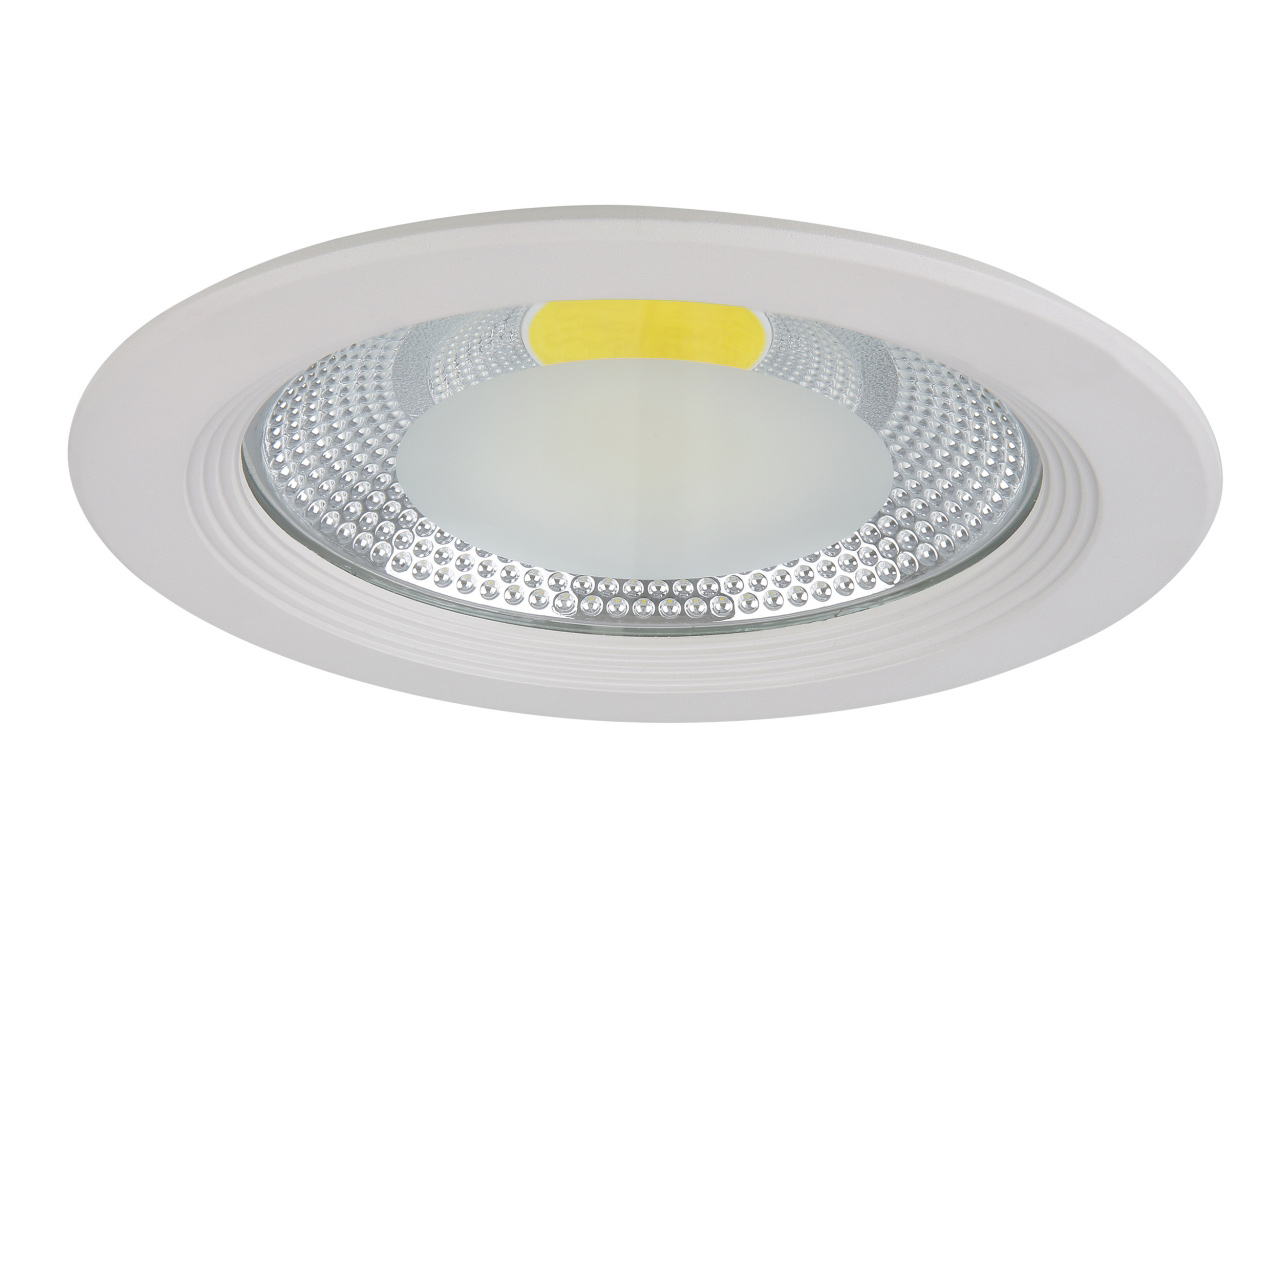 Светильник Forto LED 30W 2850LM 55G 3000K Lightstar 223302